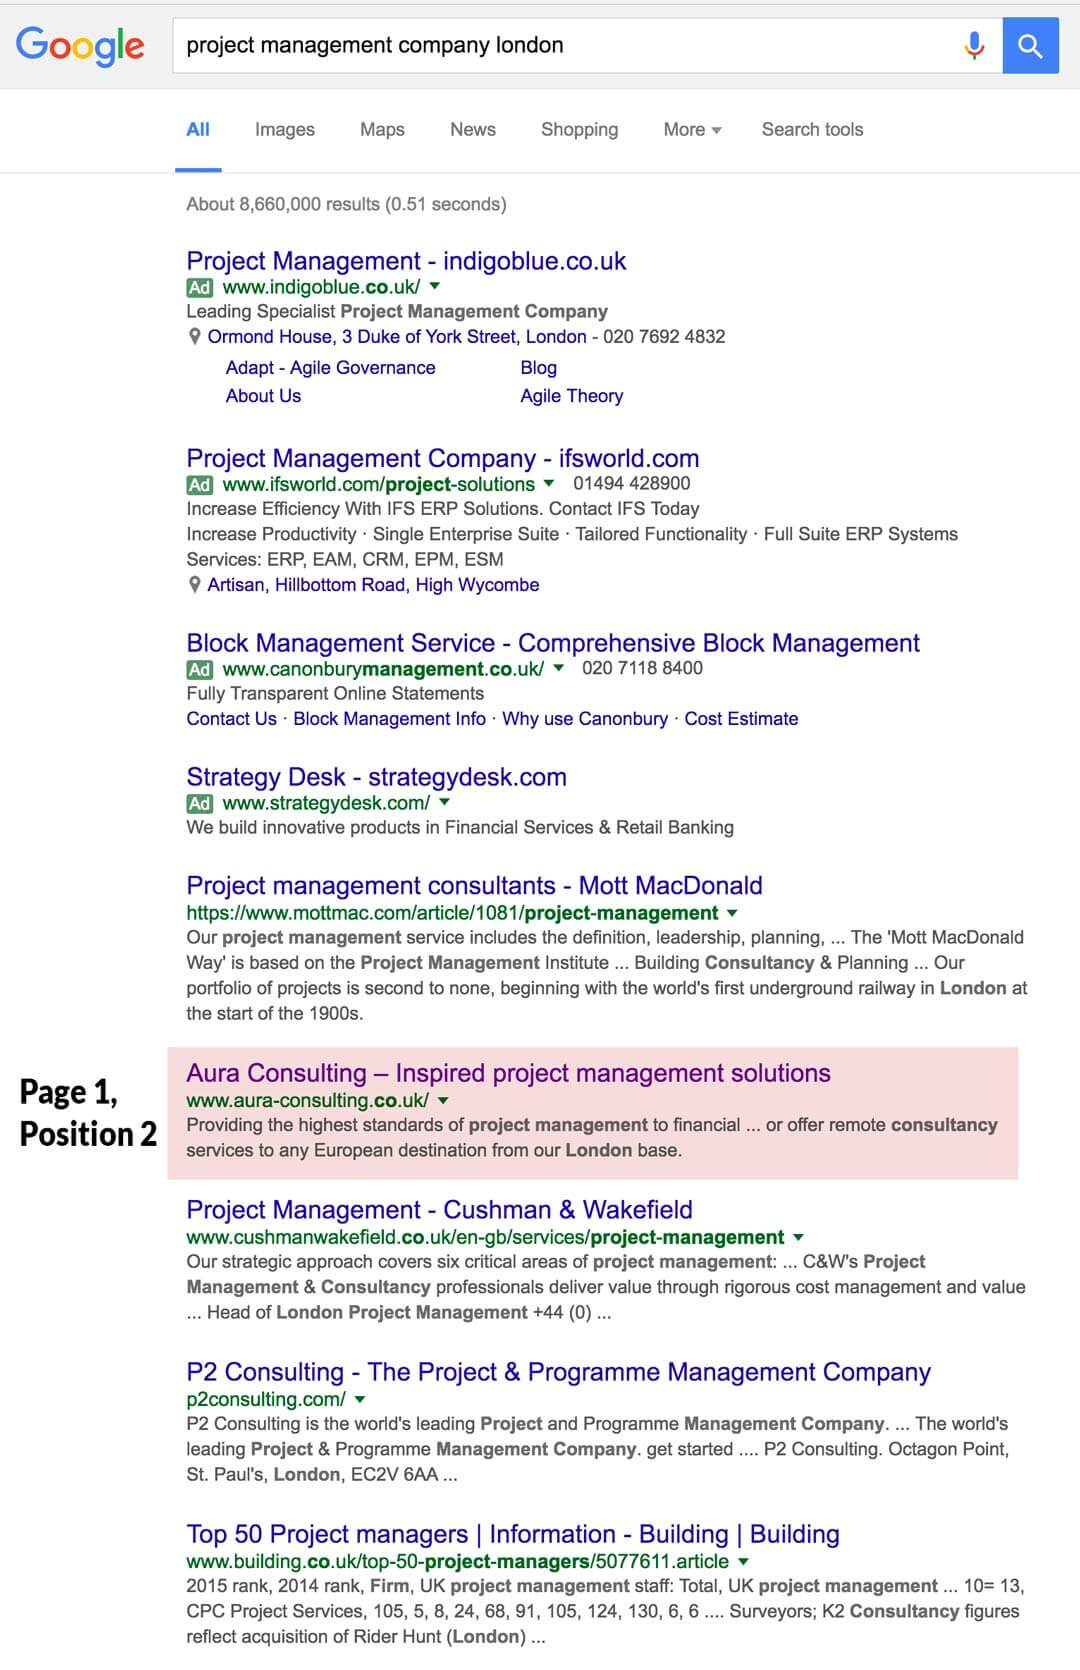 google position - project management company london